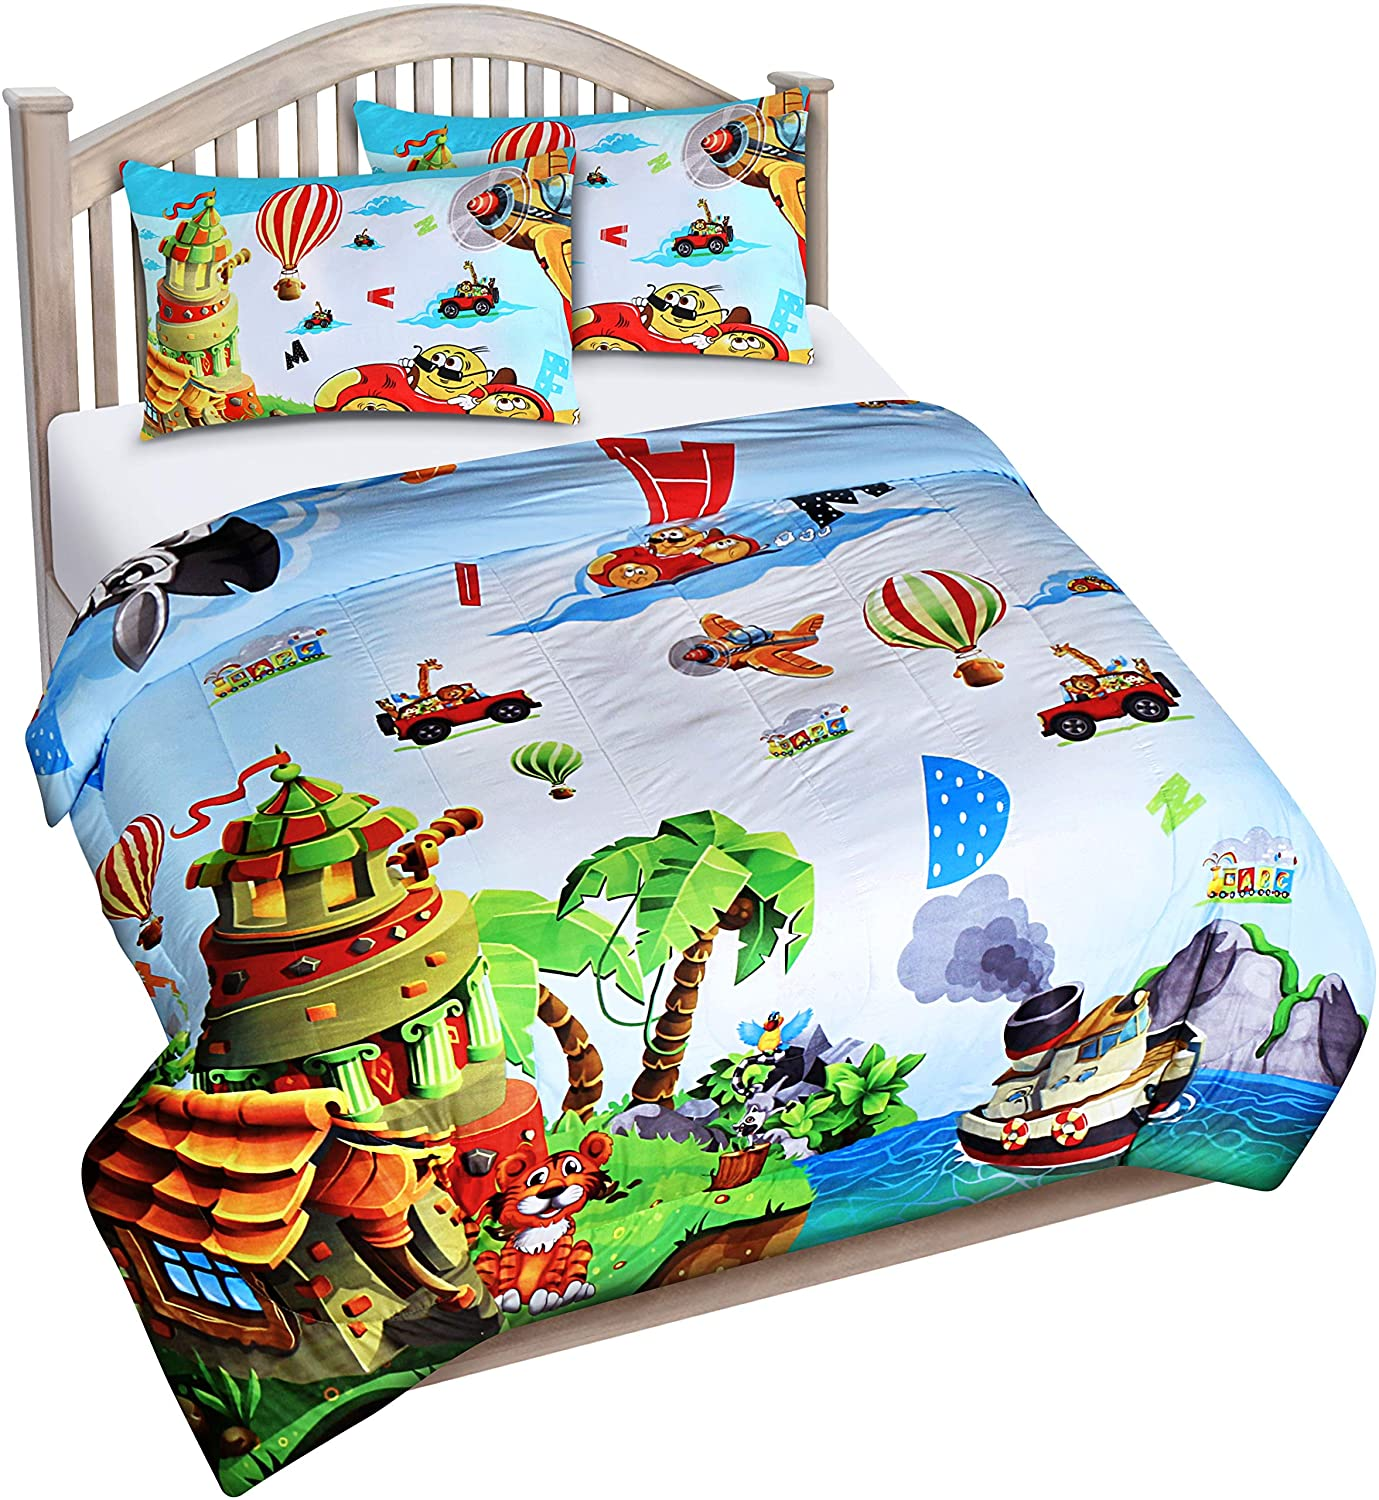 Utopia Bedding All Season Super Soft Jungle Theme Animals Kids Comforter Set - 3 Piece Toddler Bedding Sets for Boys - Full/Queen